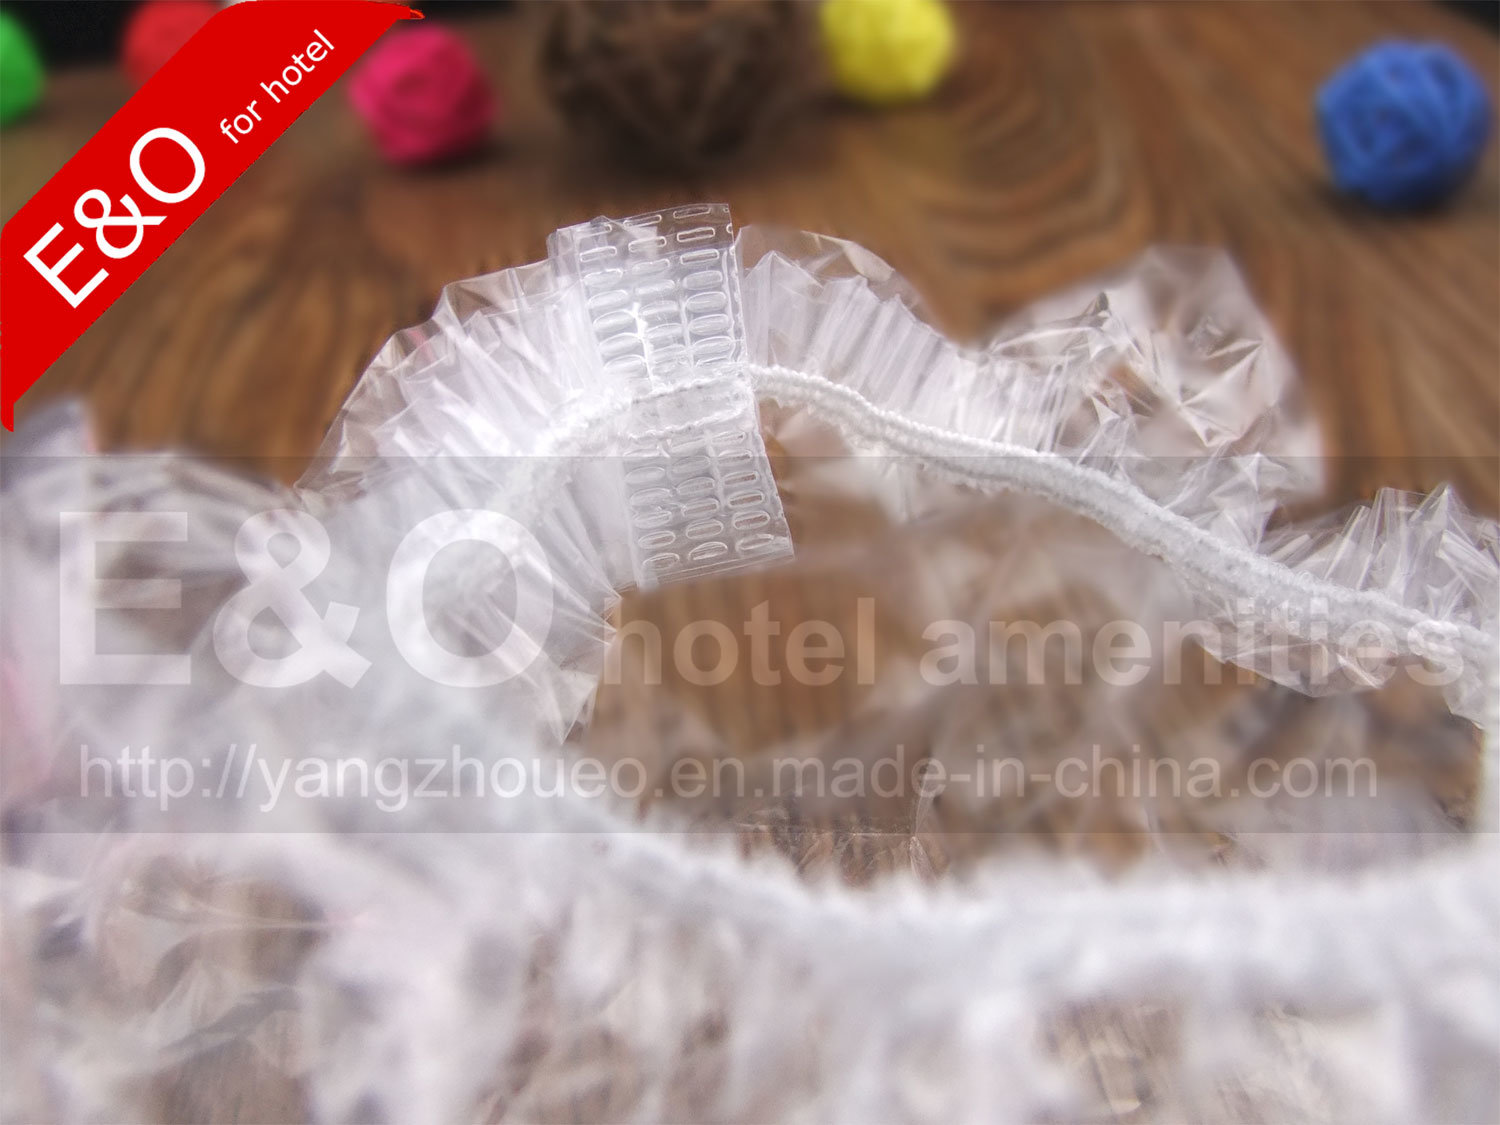 Disposable Hotel Amenities Stripe Shower Cap in Plastic Bag